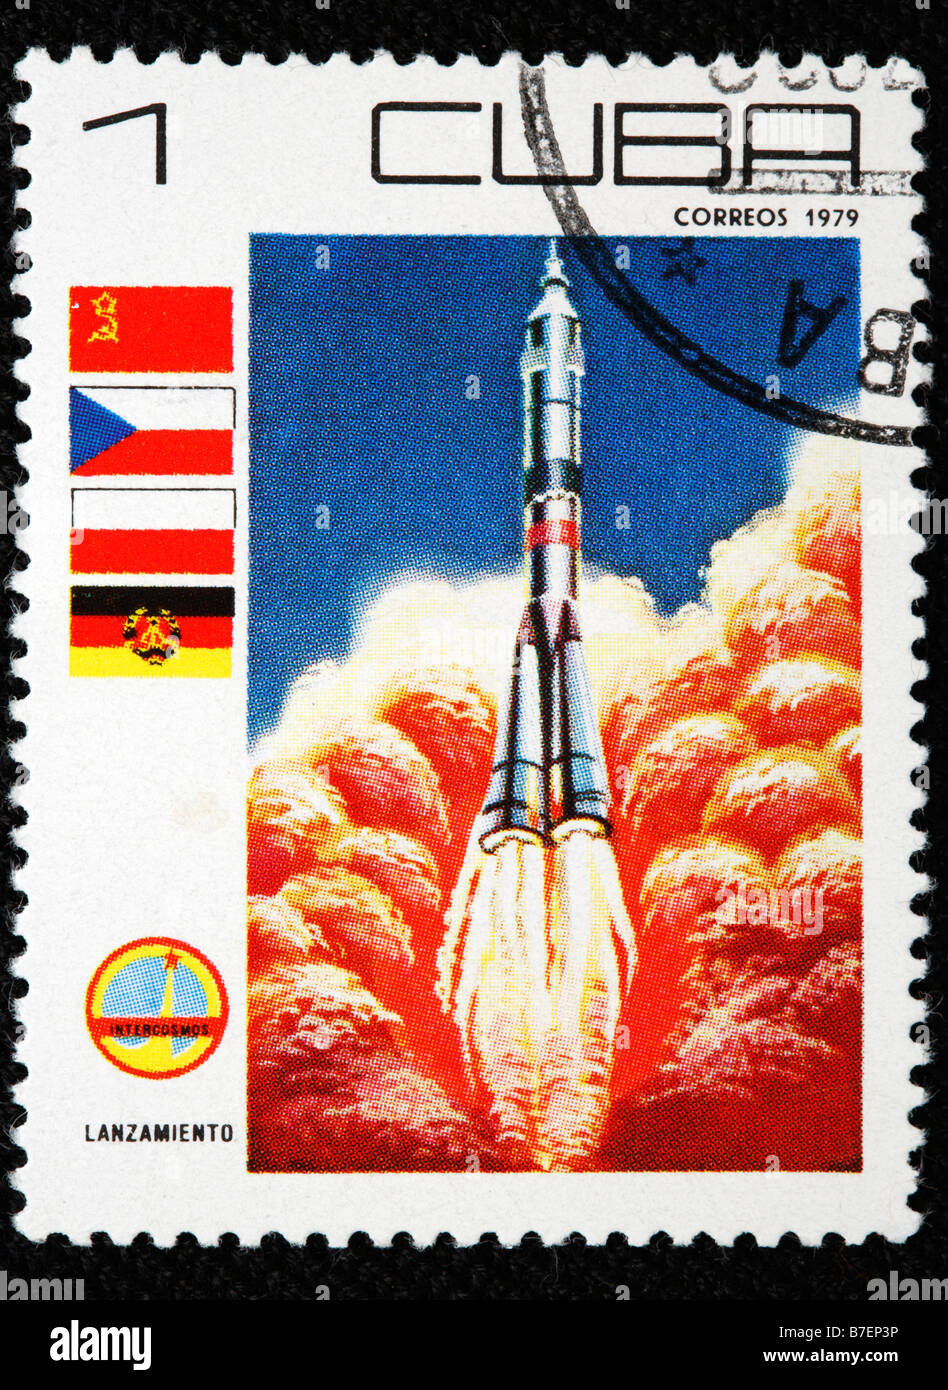 Launch of space rocket, postage stamp, Cuba, 1979 - Stock Image